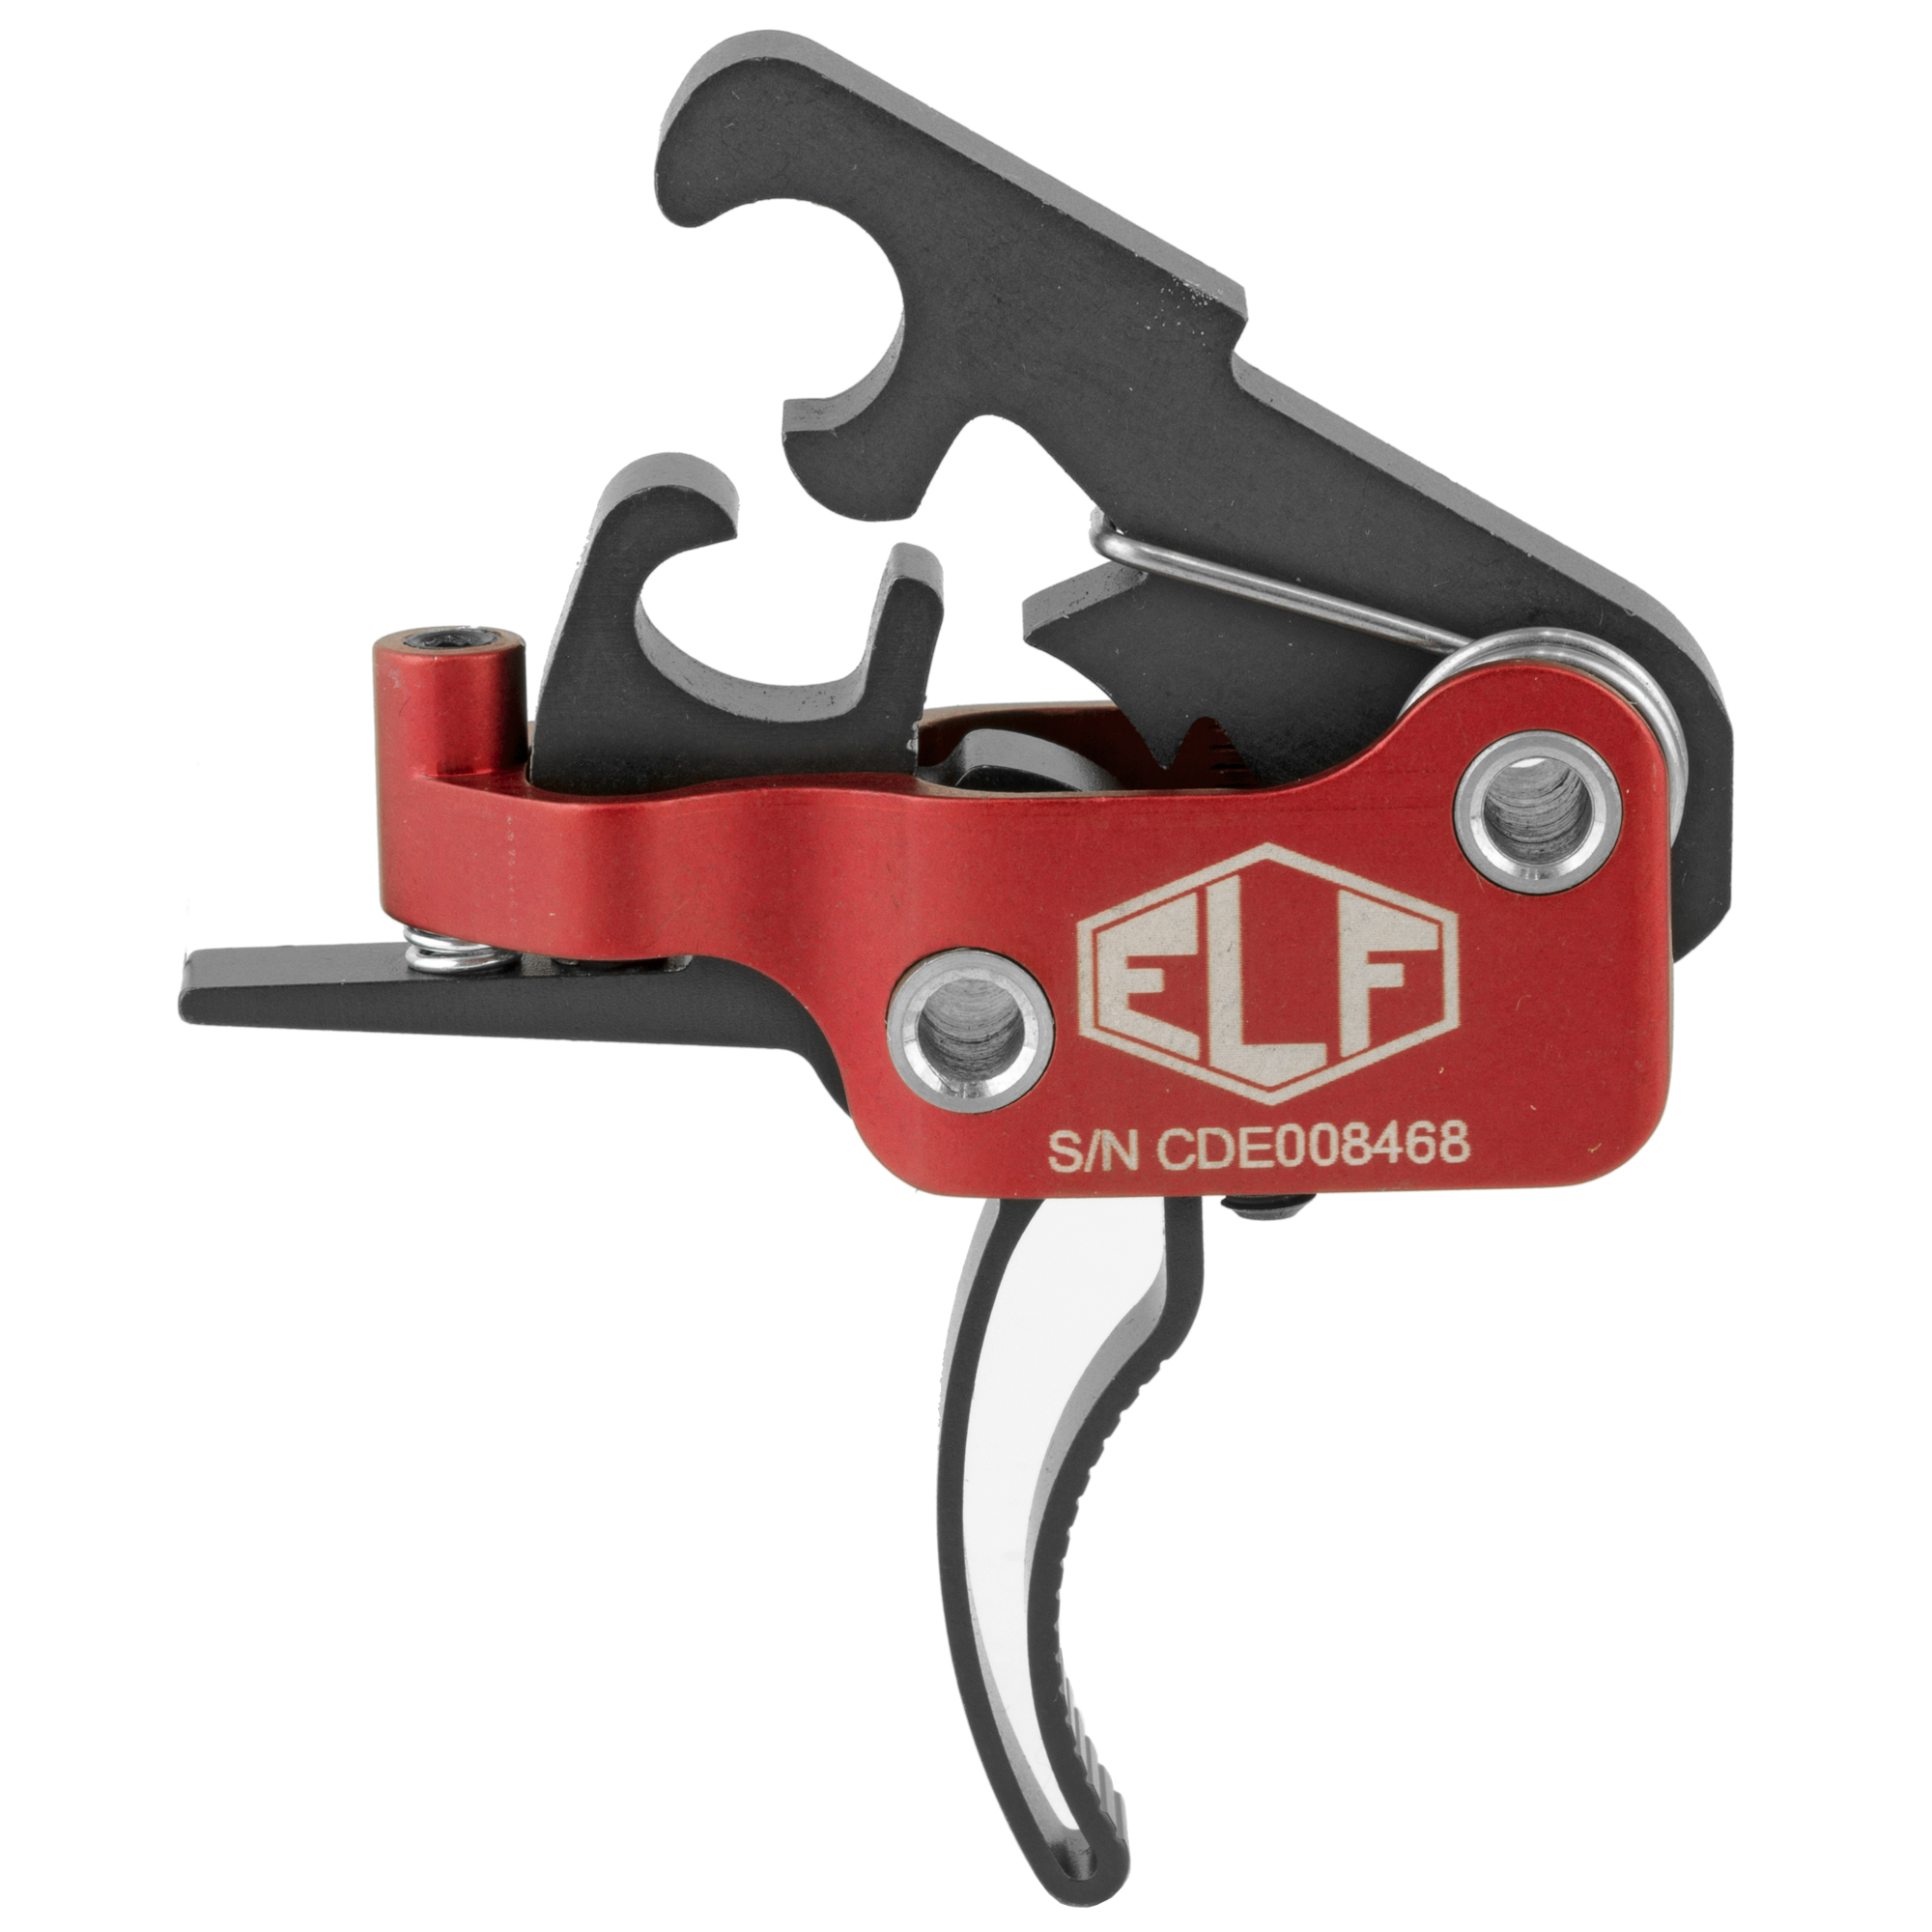 """The ELF AR-9 Drop-In Match Trigger has been built for performance. The amazingly short take-up"""" glass-rod crisp break and next to zero over travel can be compared to the finest custom 1911 triggers. Adjustability puts you in charge based on your current use. If you are looking for the finest adjustable trigger for your AR-9 / AR-45 platform"""" this is the trigger system for you."""